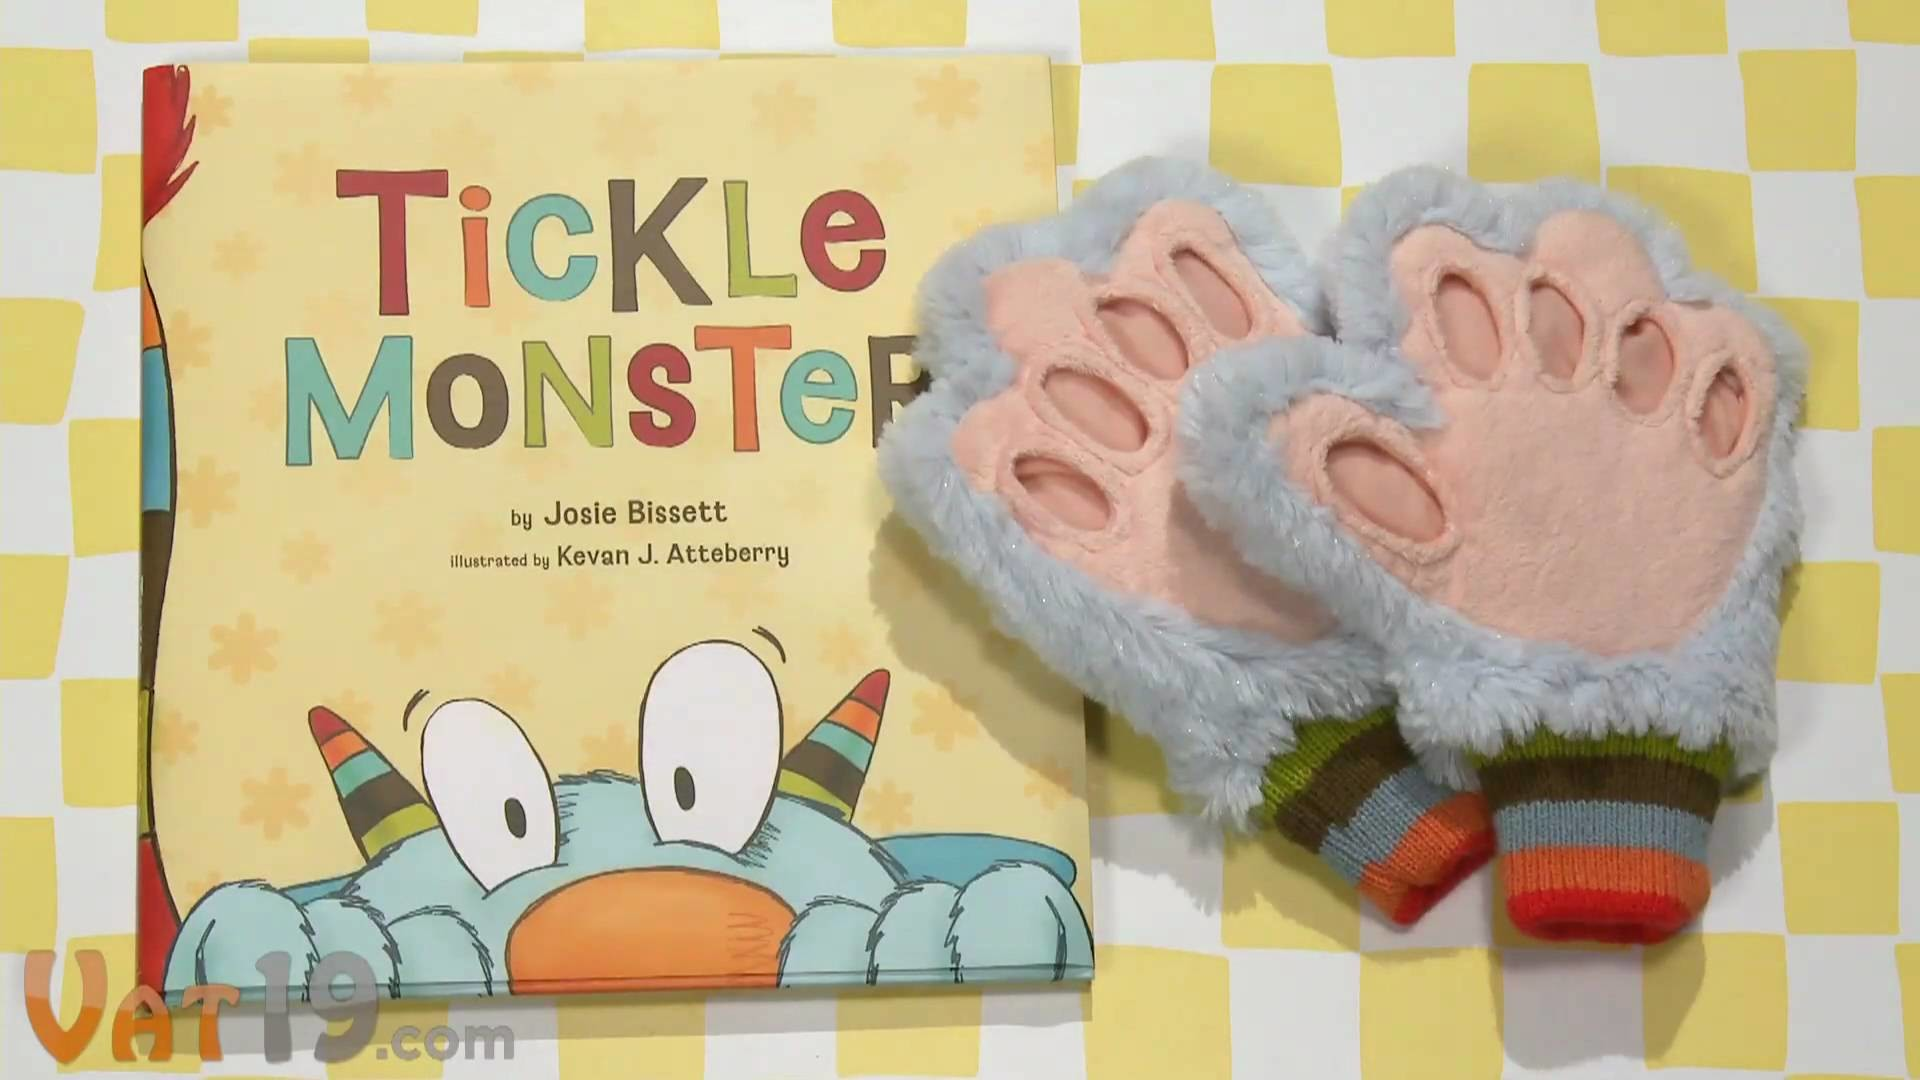 Tickle Monster Laughter Kit by Josie Bissett